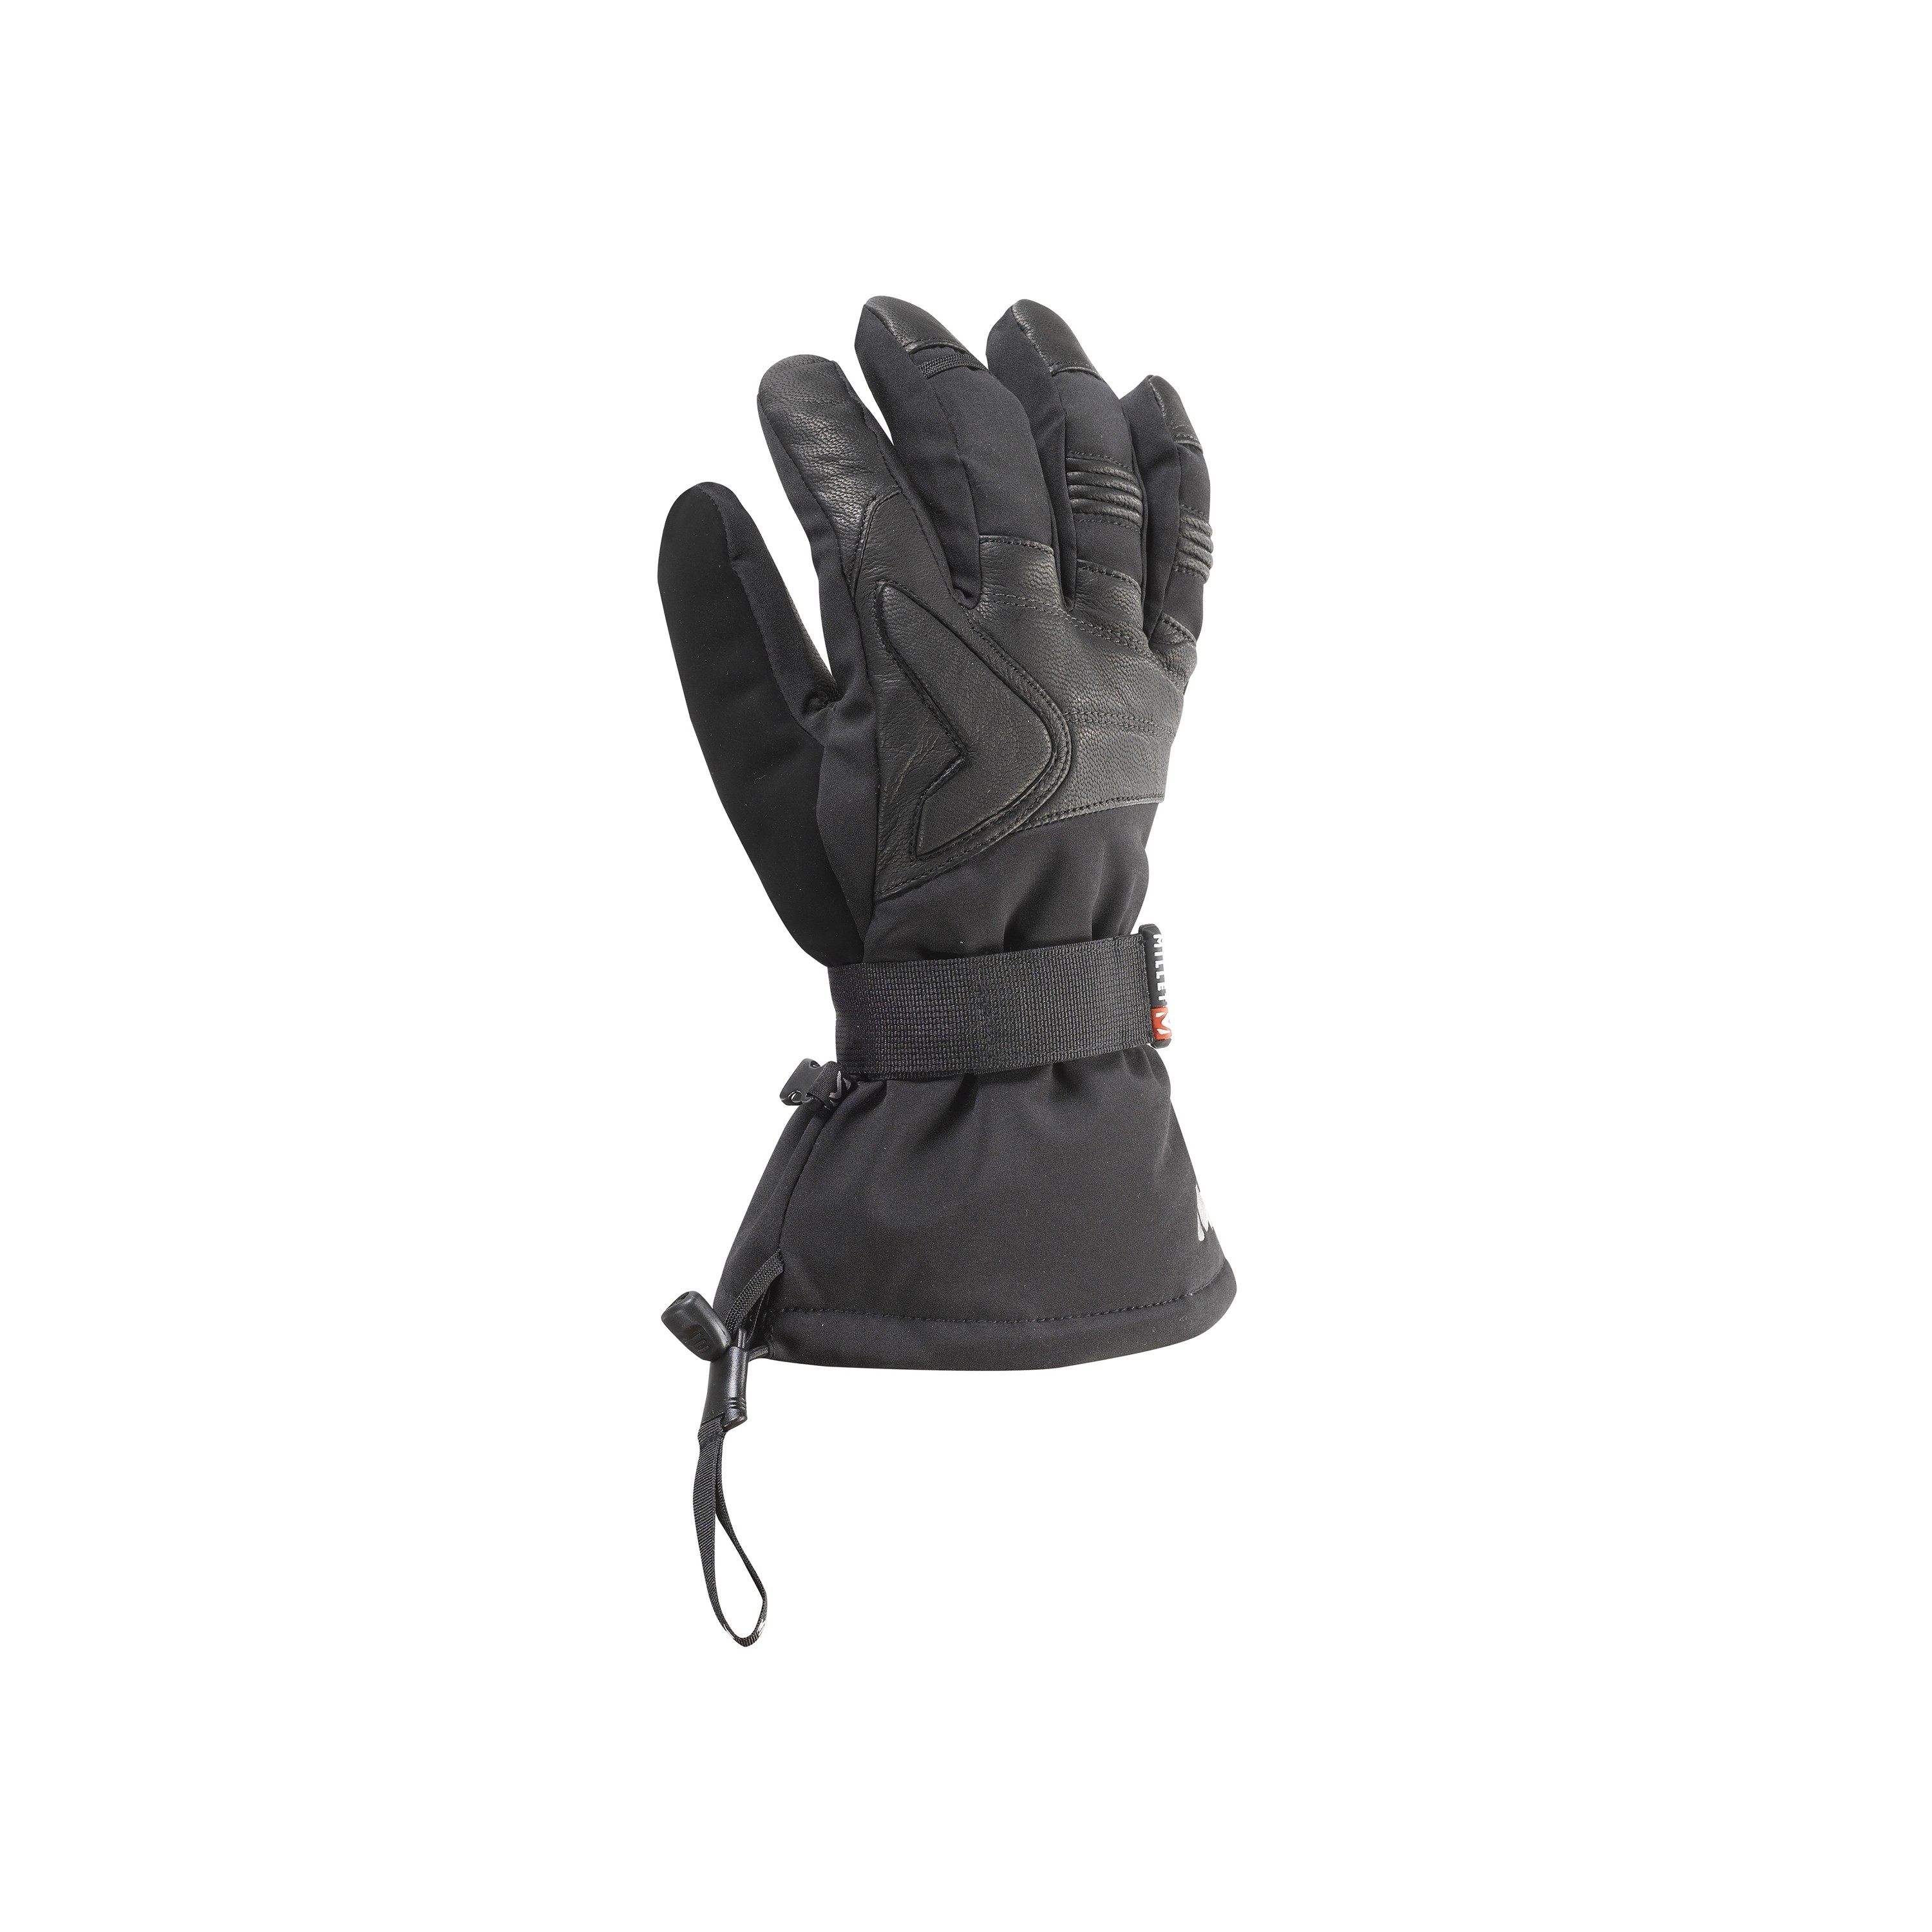 LONG 3 IN 1 DRYEDGE GLOVE